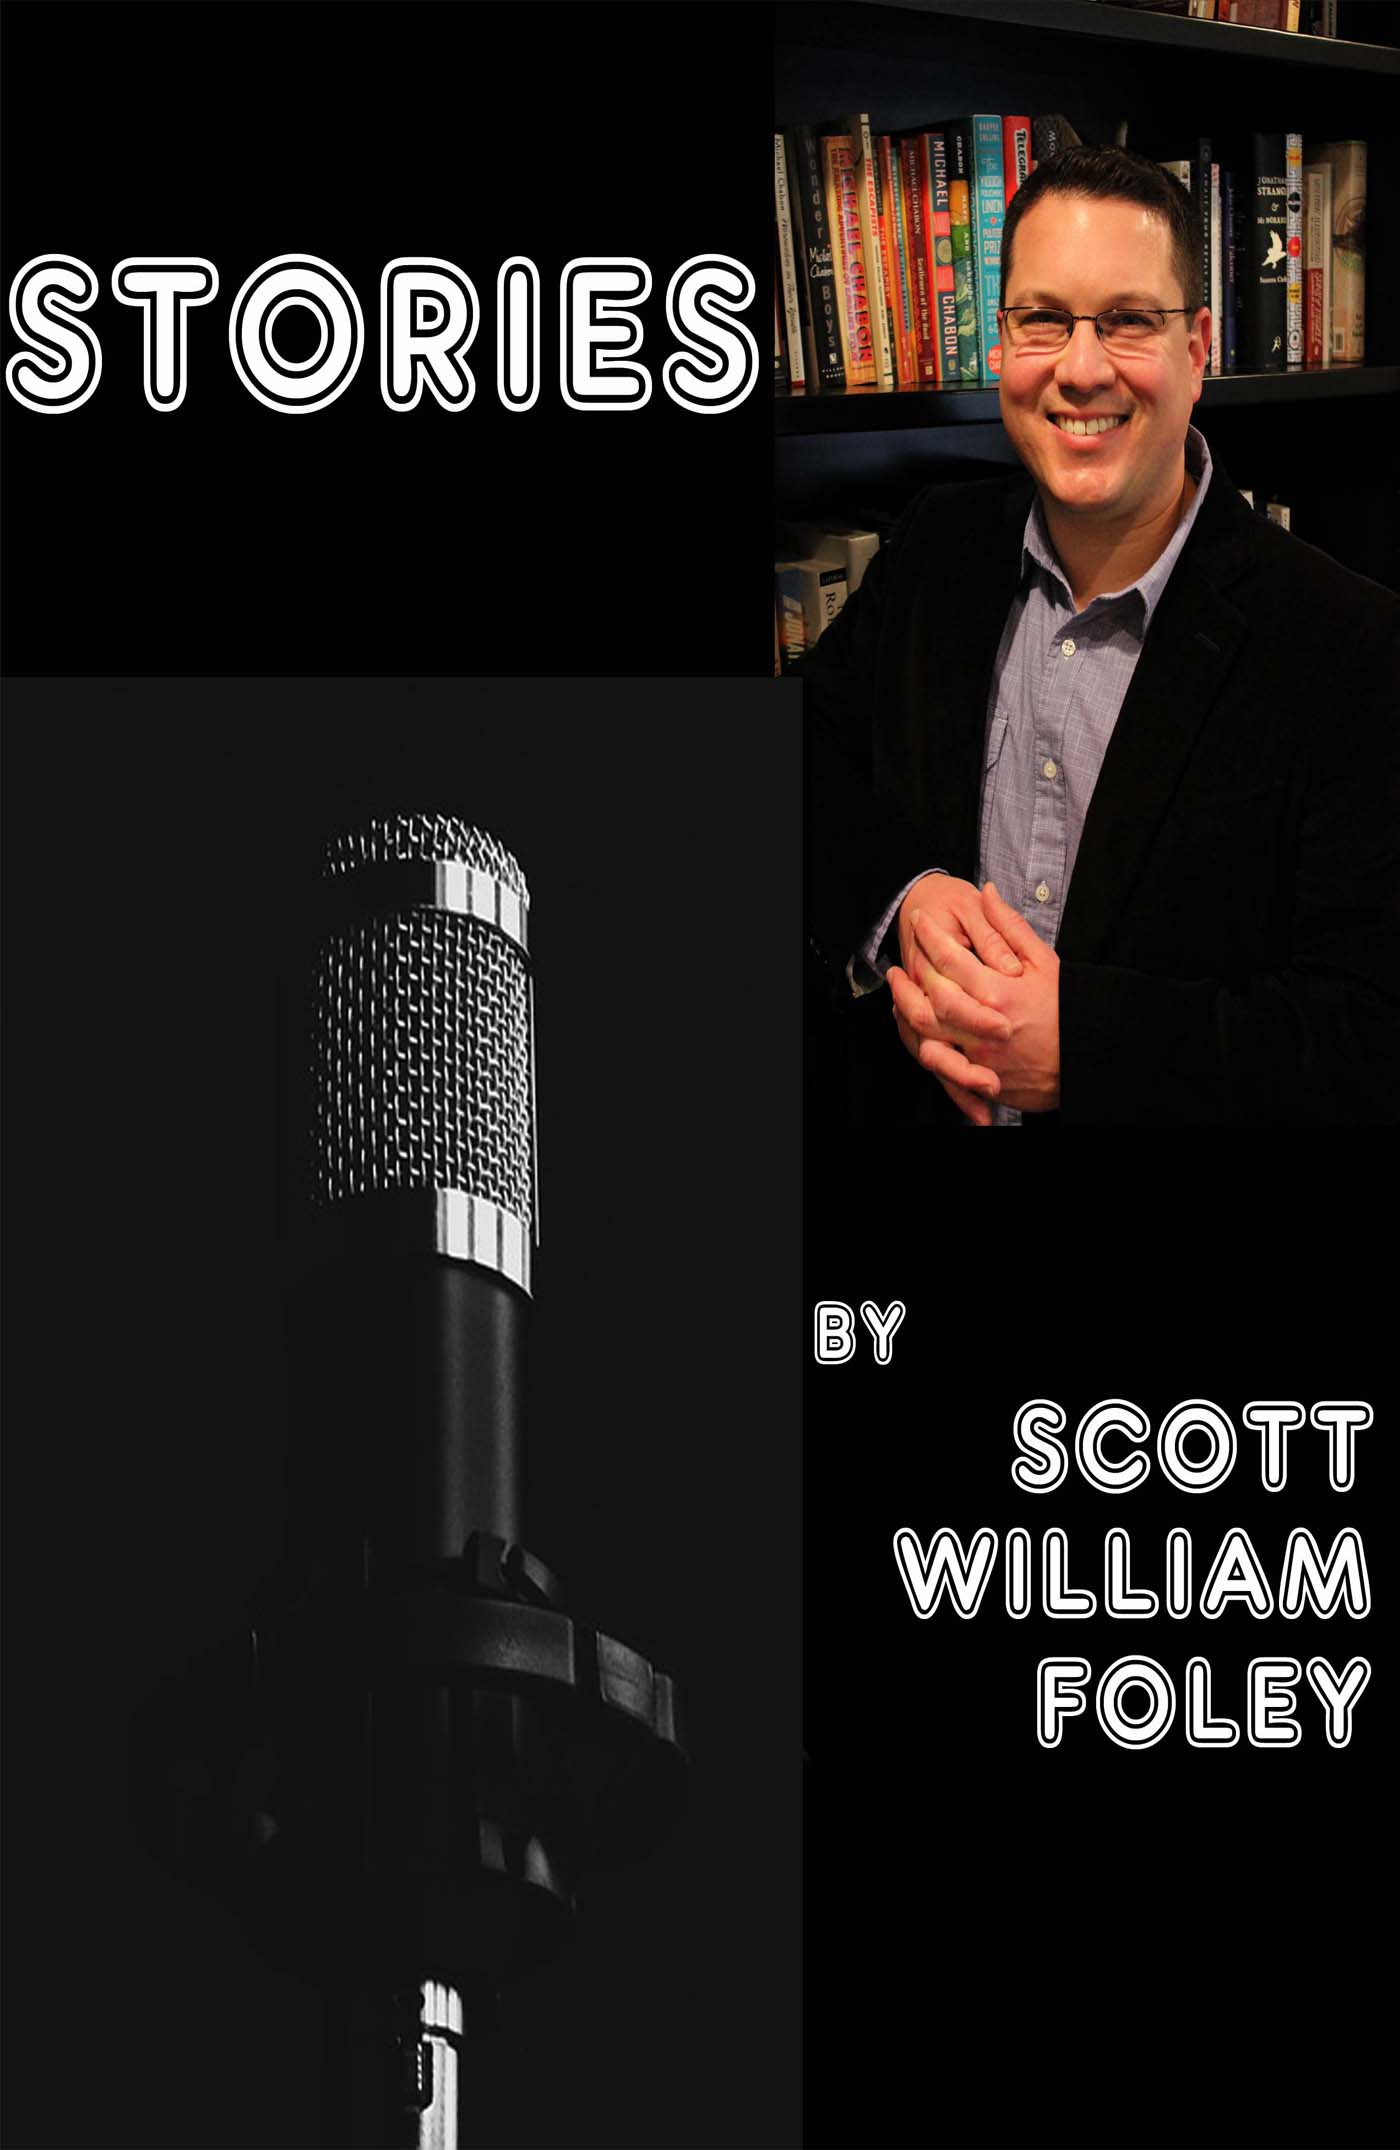 Stories By Scott William Foley